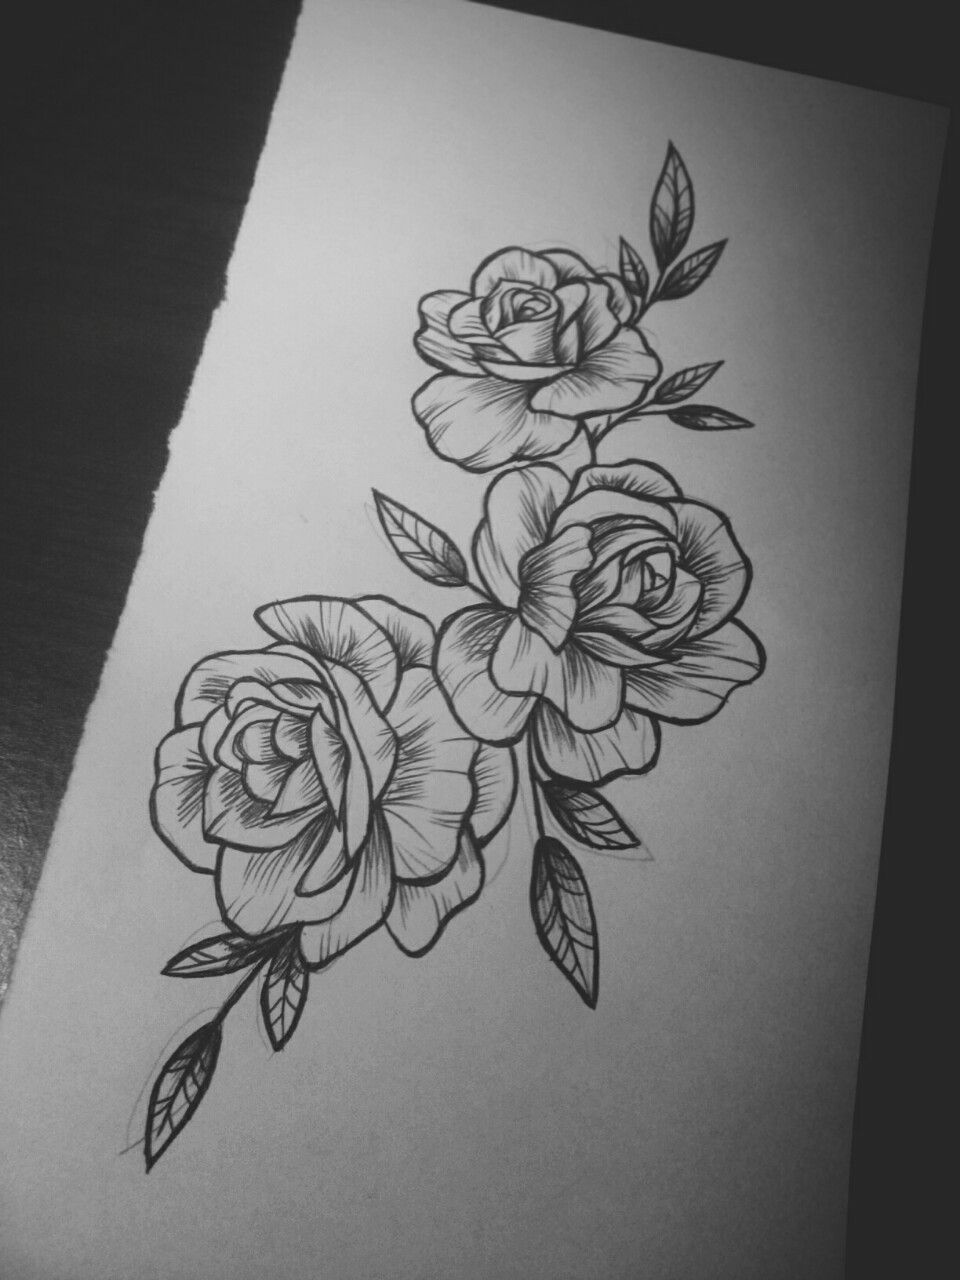 Tattoo Inspiration Tattoos Pinterest Tattoo Ideas And Designs